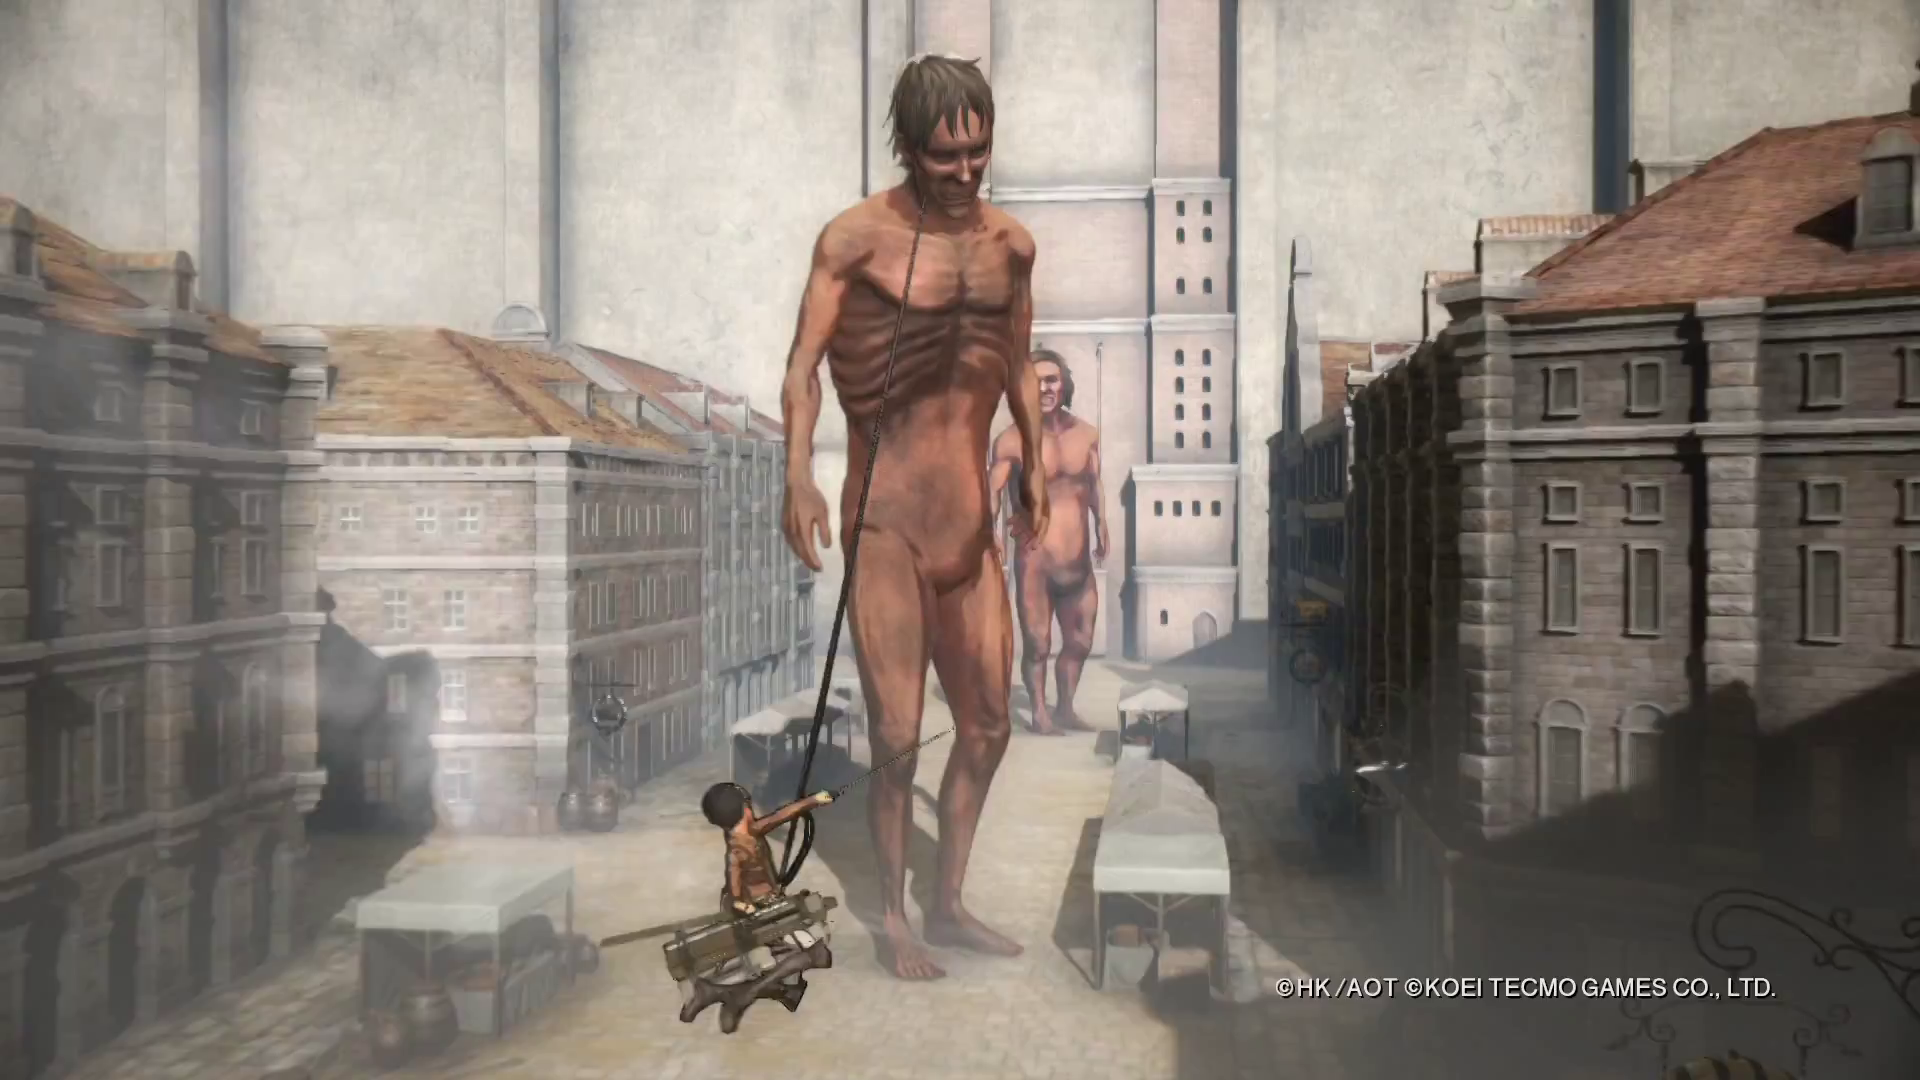 vlcsnap-2015-11-05-12h55m07s355 Attack on Titan Trailer